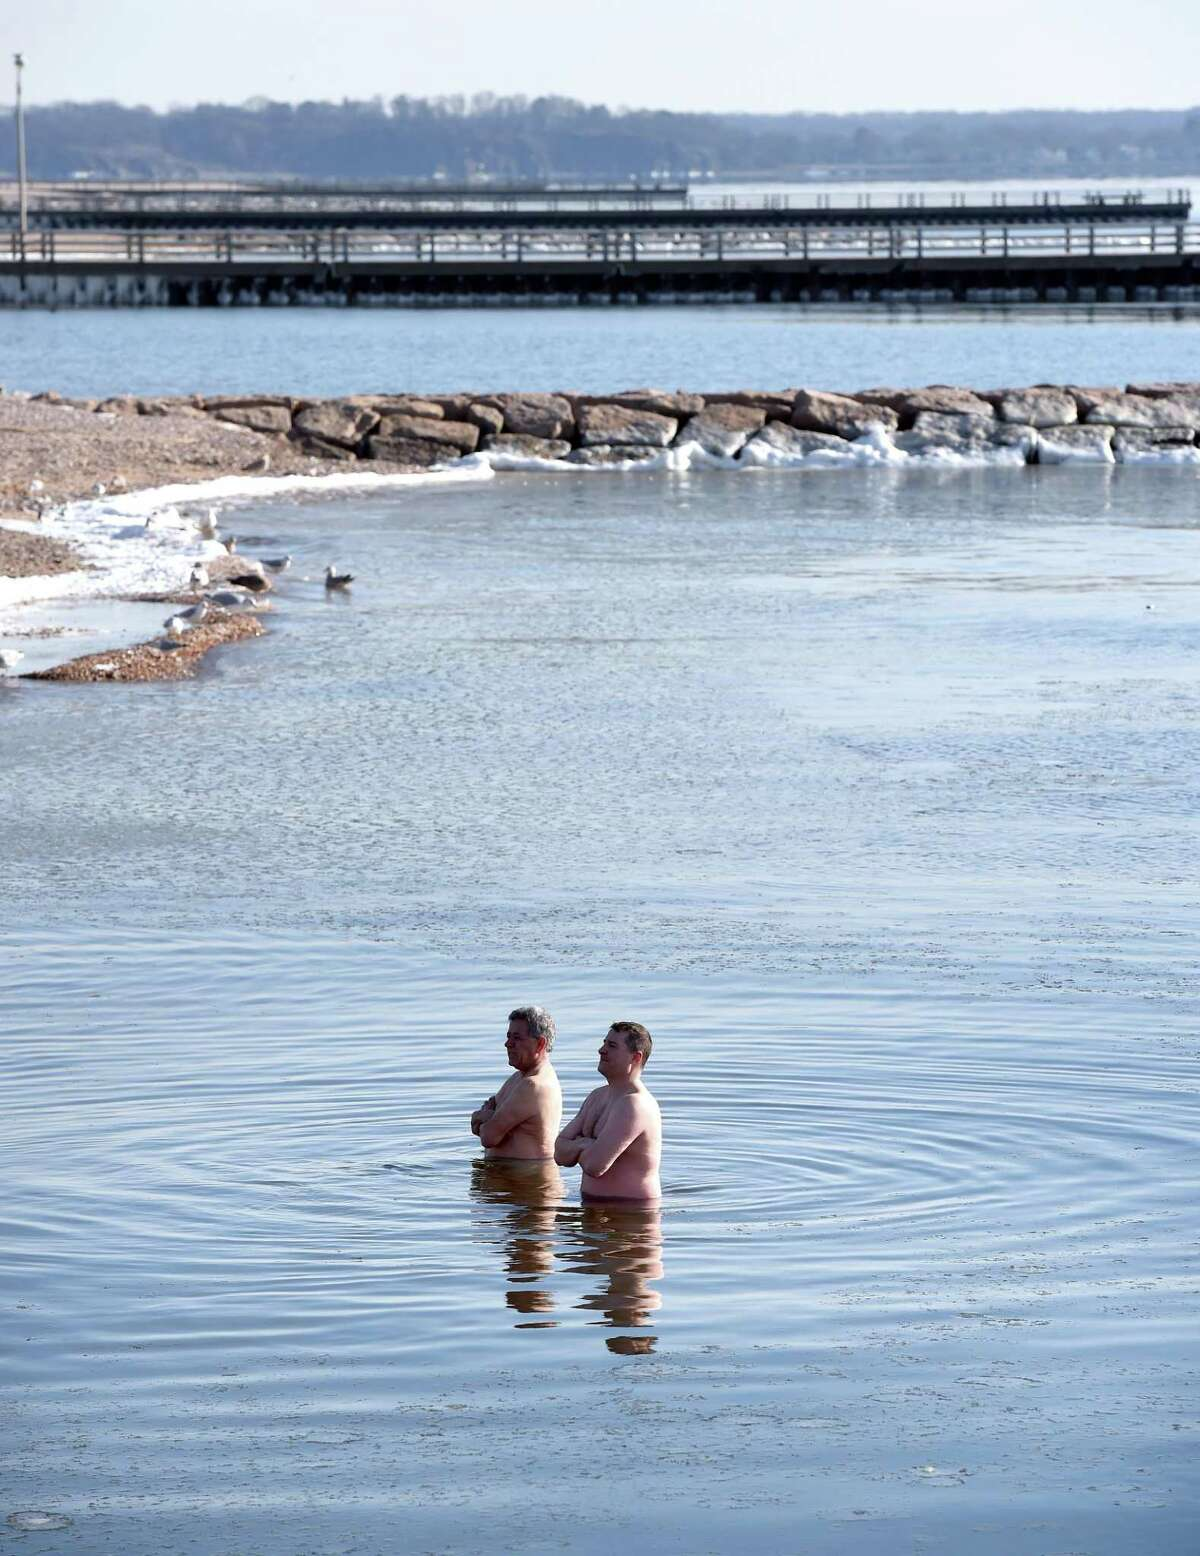 Anthony Cordone (left) of West Haven and Chris Molyneux of Seymour remain in the Long Island Sound at Savin Rock in West Haven as the last two participants in the Icy Plunge for the Cure to raise funds for the West Haven Breast Cancer Awareness Program on Feb. 2, 2019.